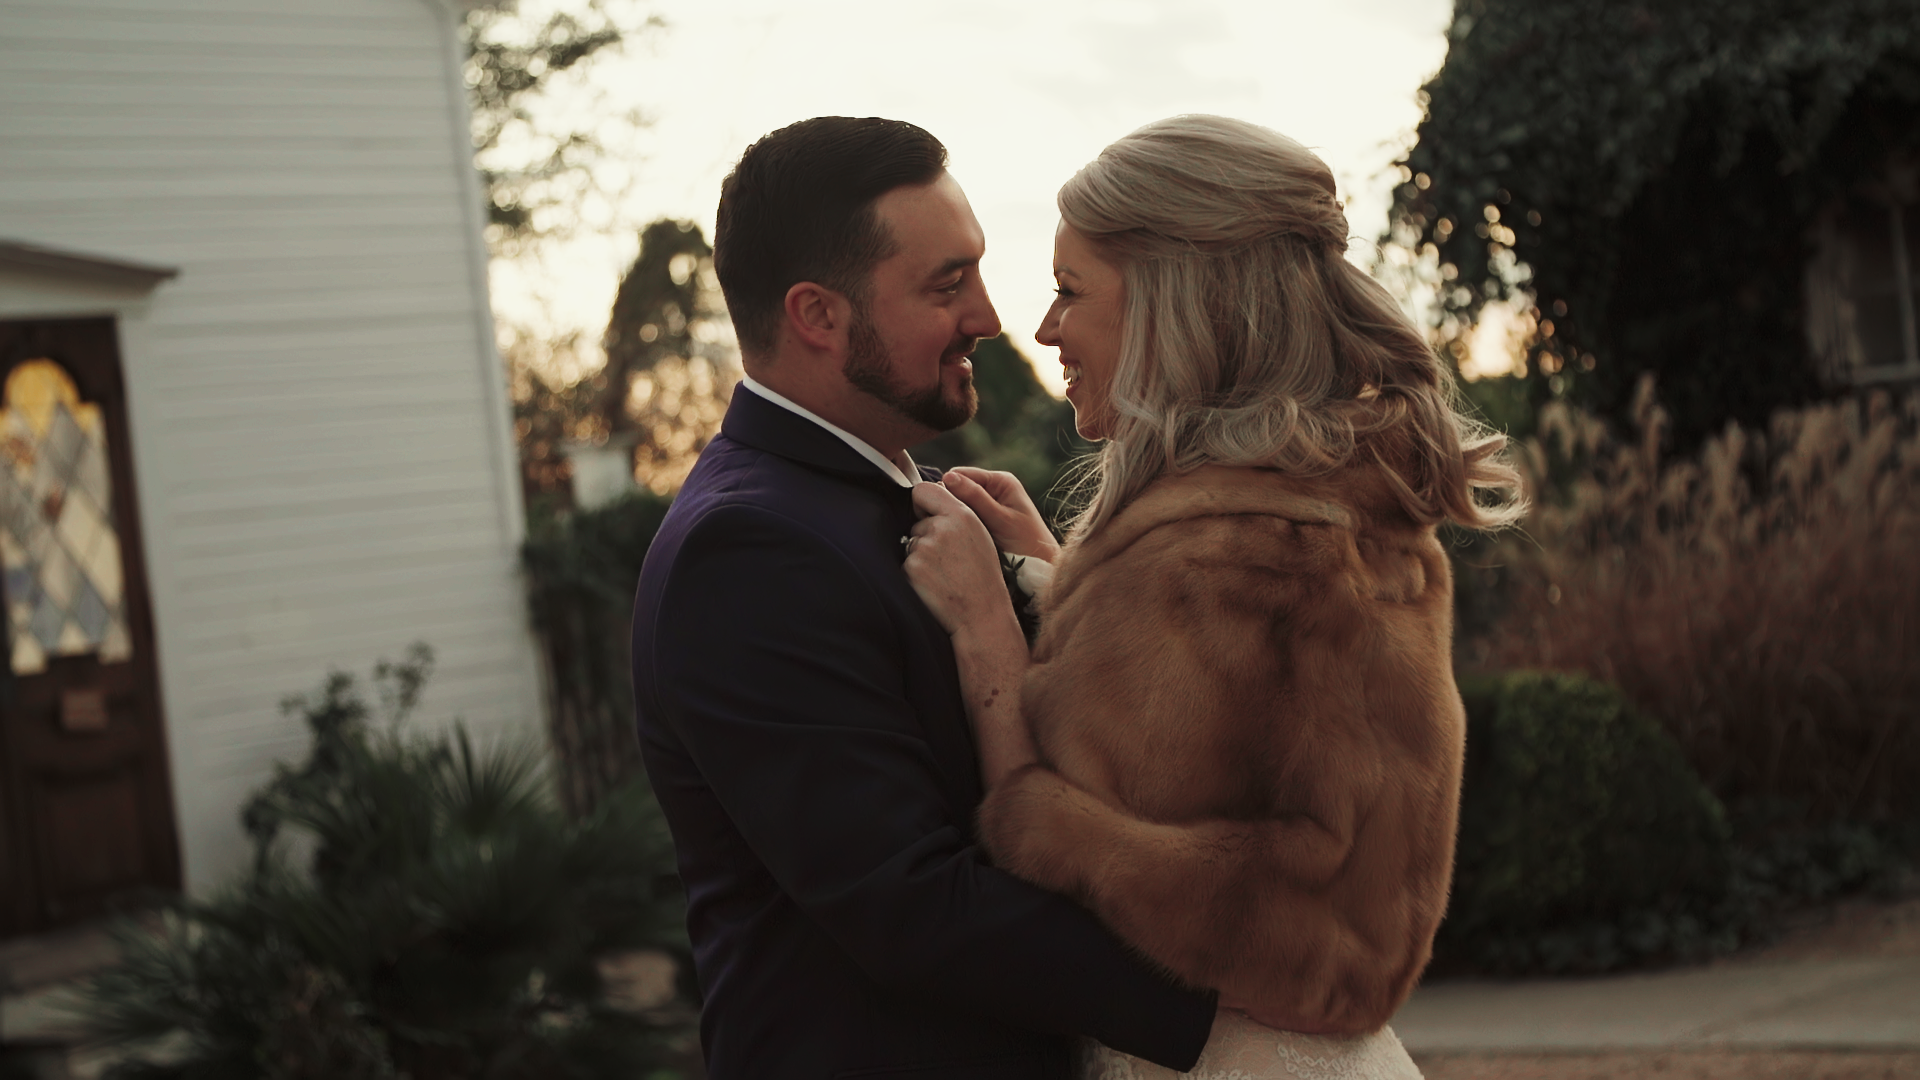 Barr_Mansion_Austin_Wedding_Videographer_New_Beginnings_Films_51.png